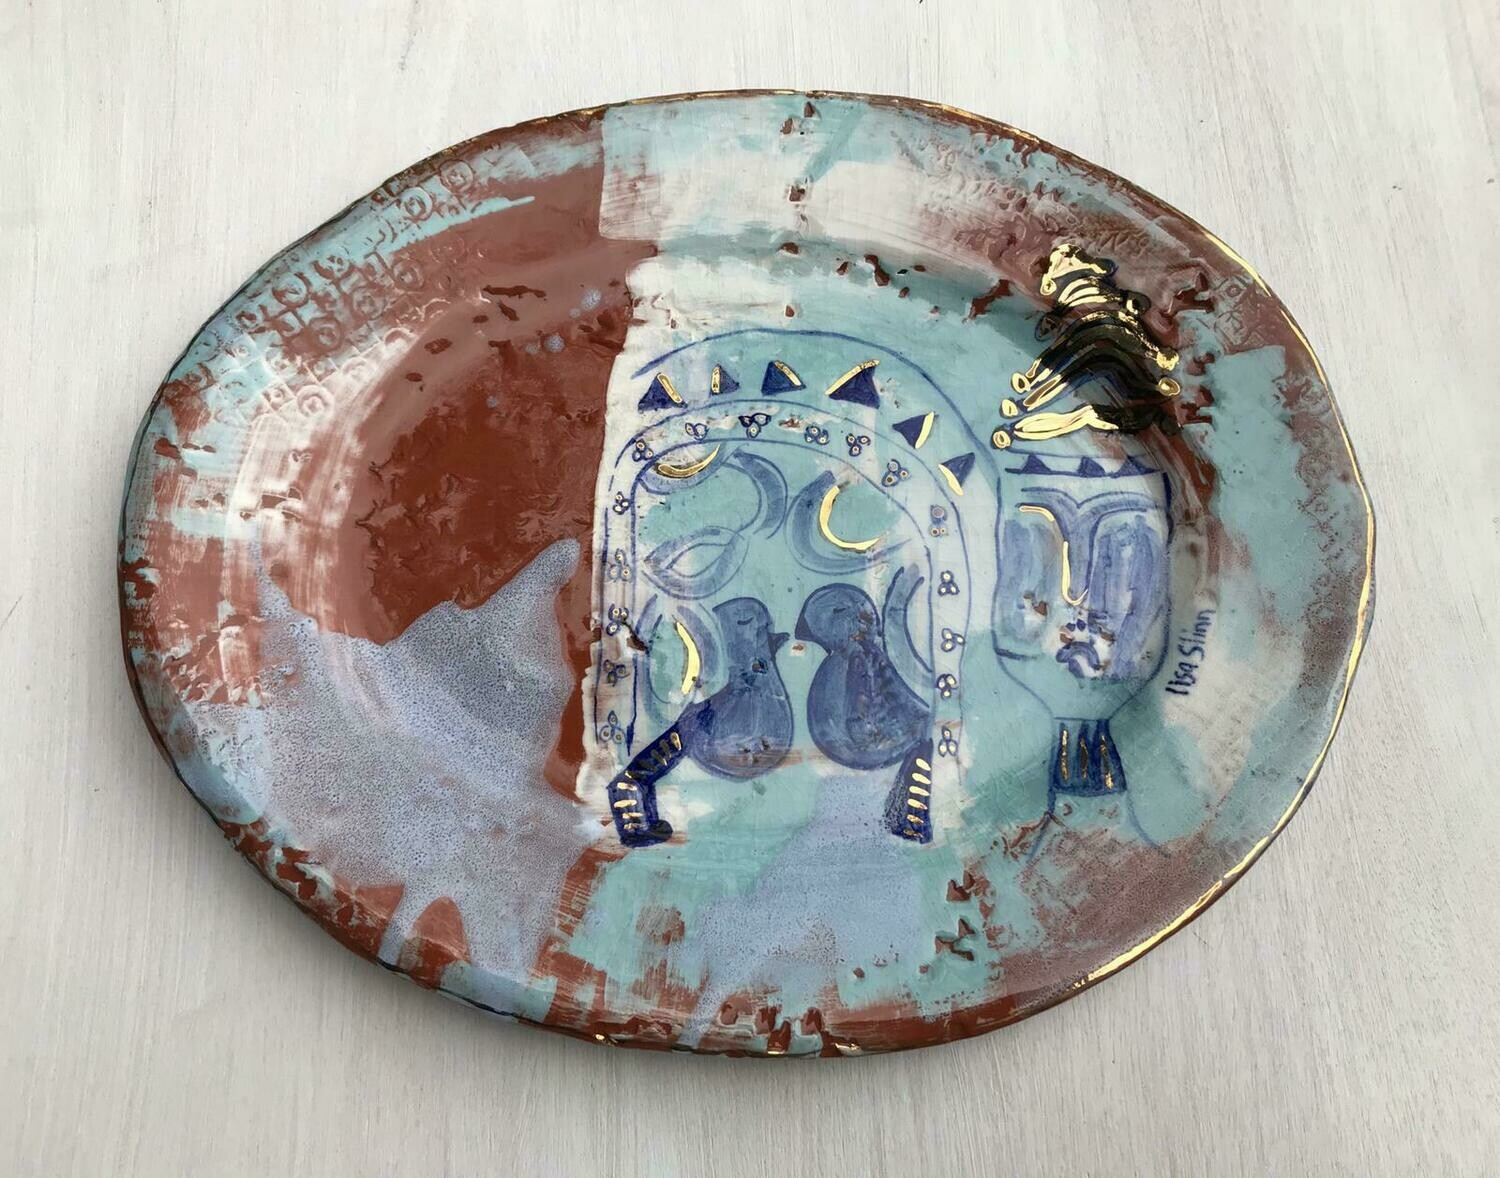 'Enki God' Charger Plate